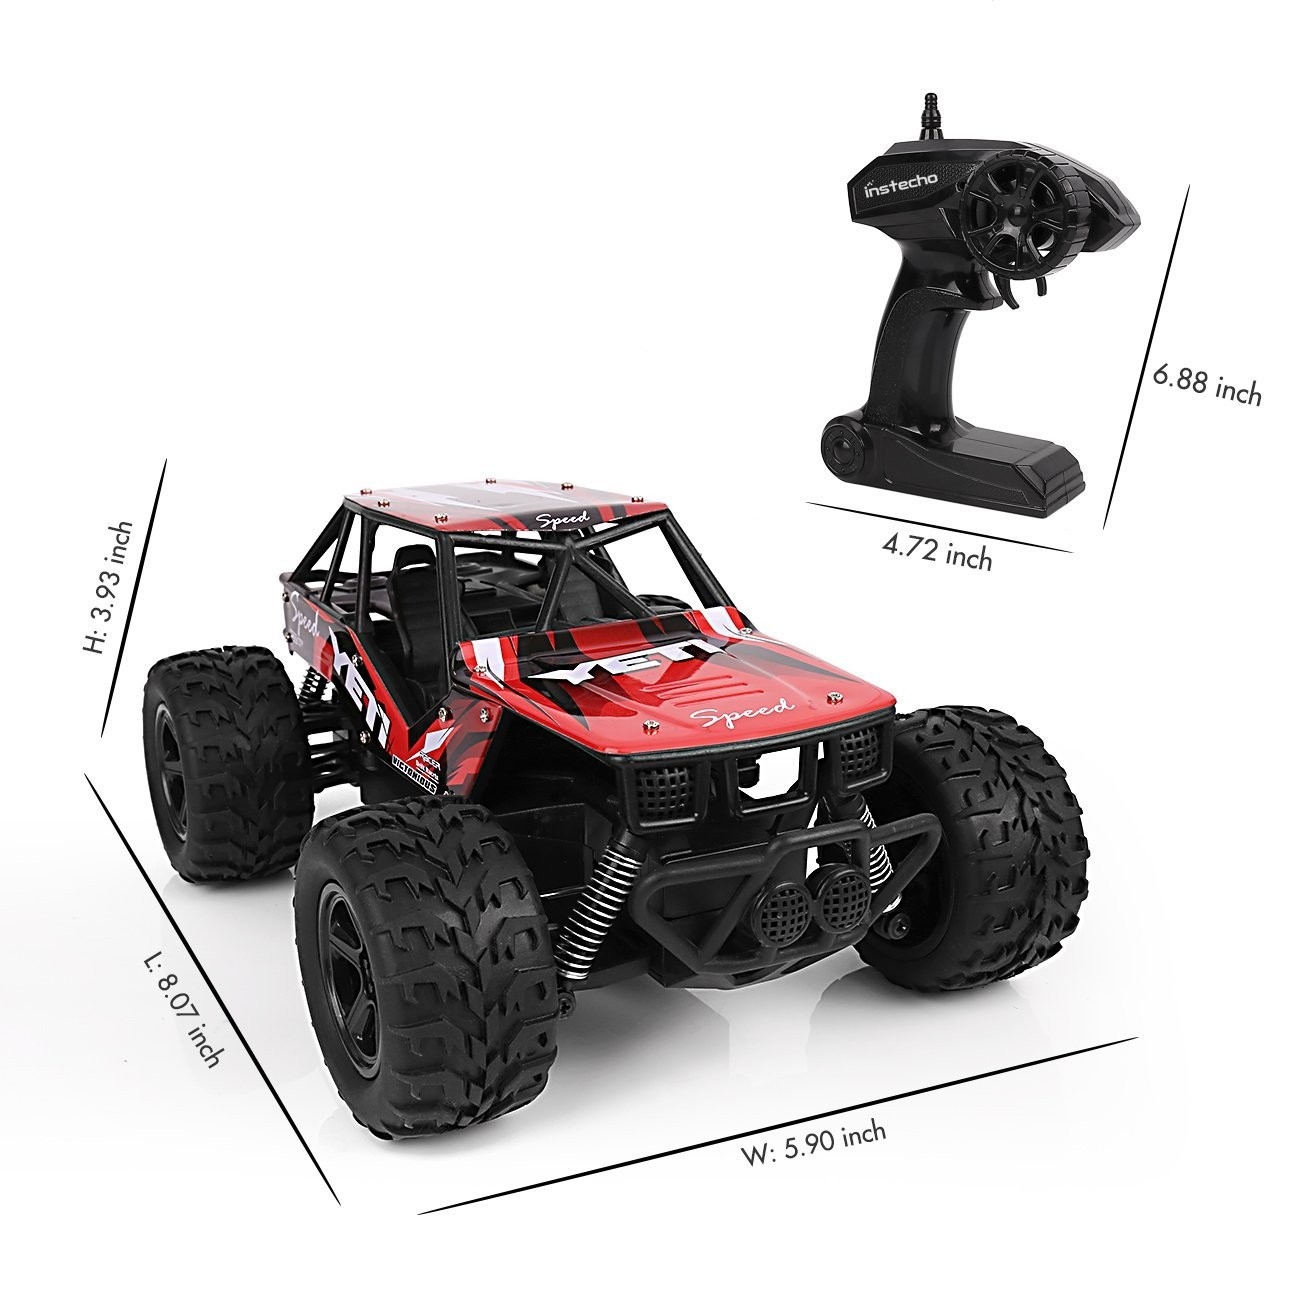 Best Rc Cars For Kids Remote Control Rock Crawel Off Road 120 Car Circuit Toys Scale 24ghz 2wd Powerful High Speed Monster Truck Race Buggy Hobby And